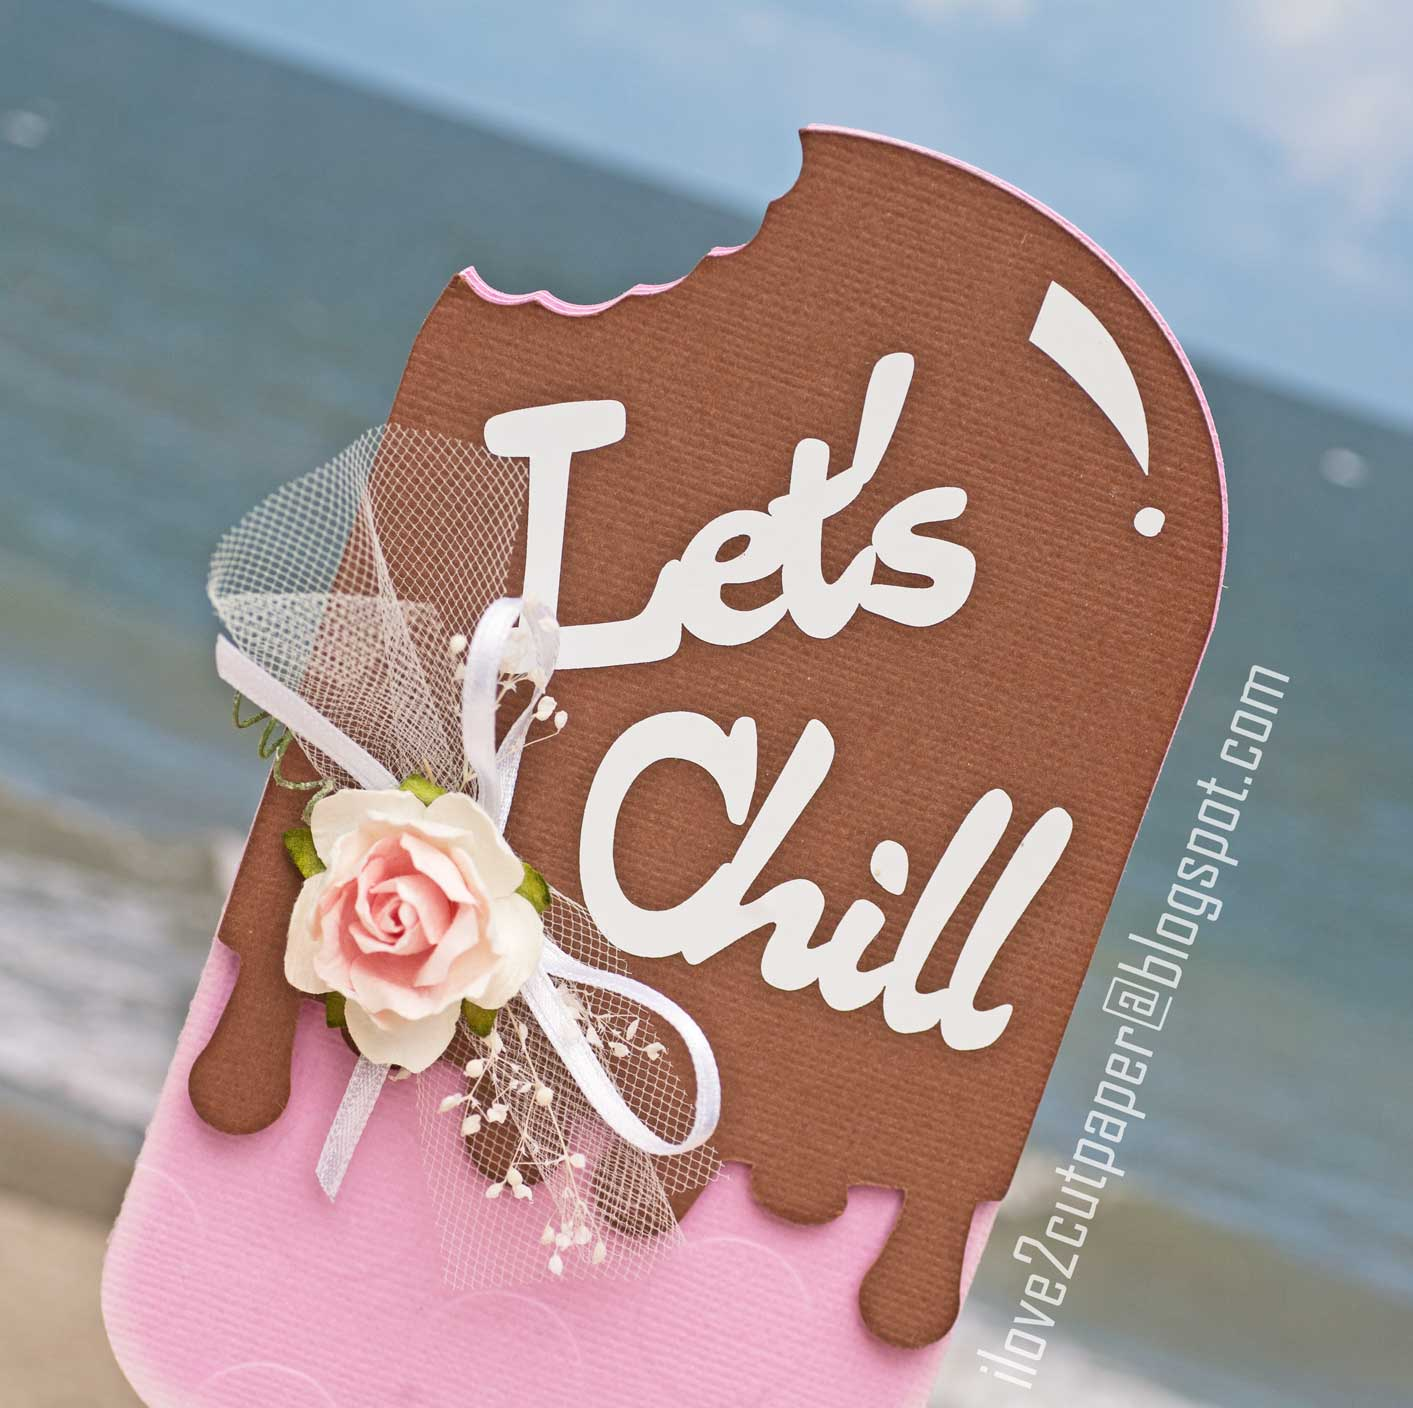 Download i love 2 cut paper: Cut It Up Challenge Blog - #75 Word or ...